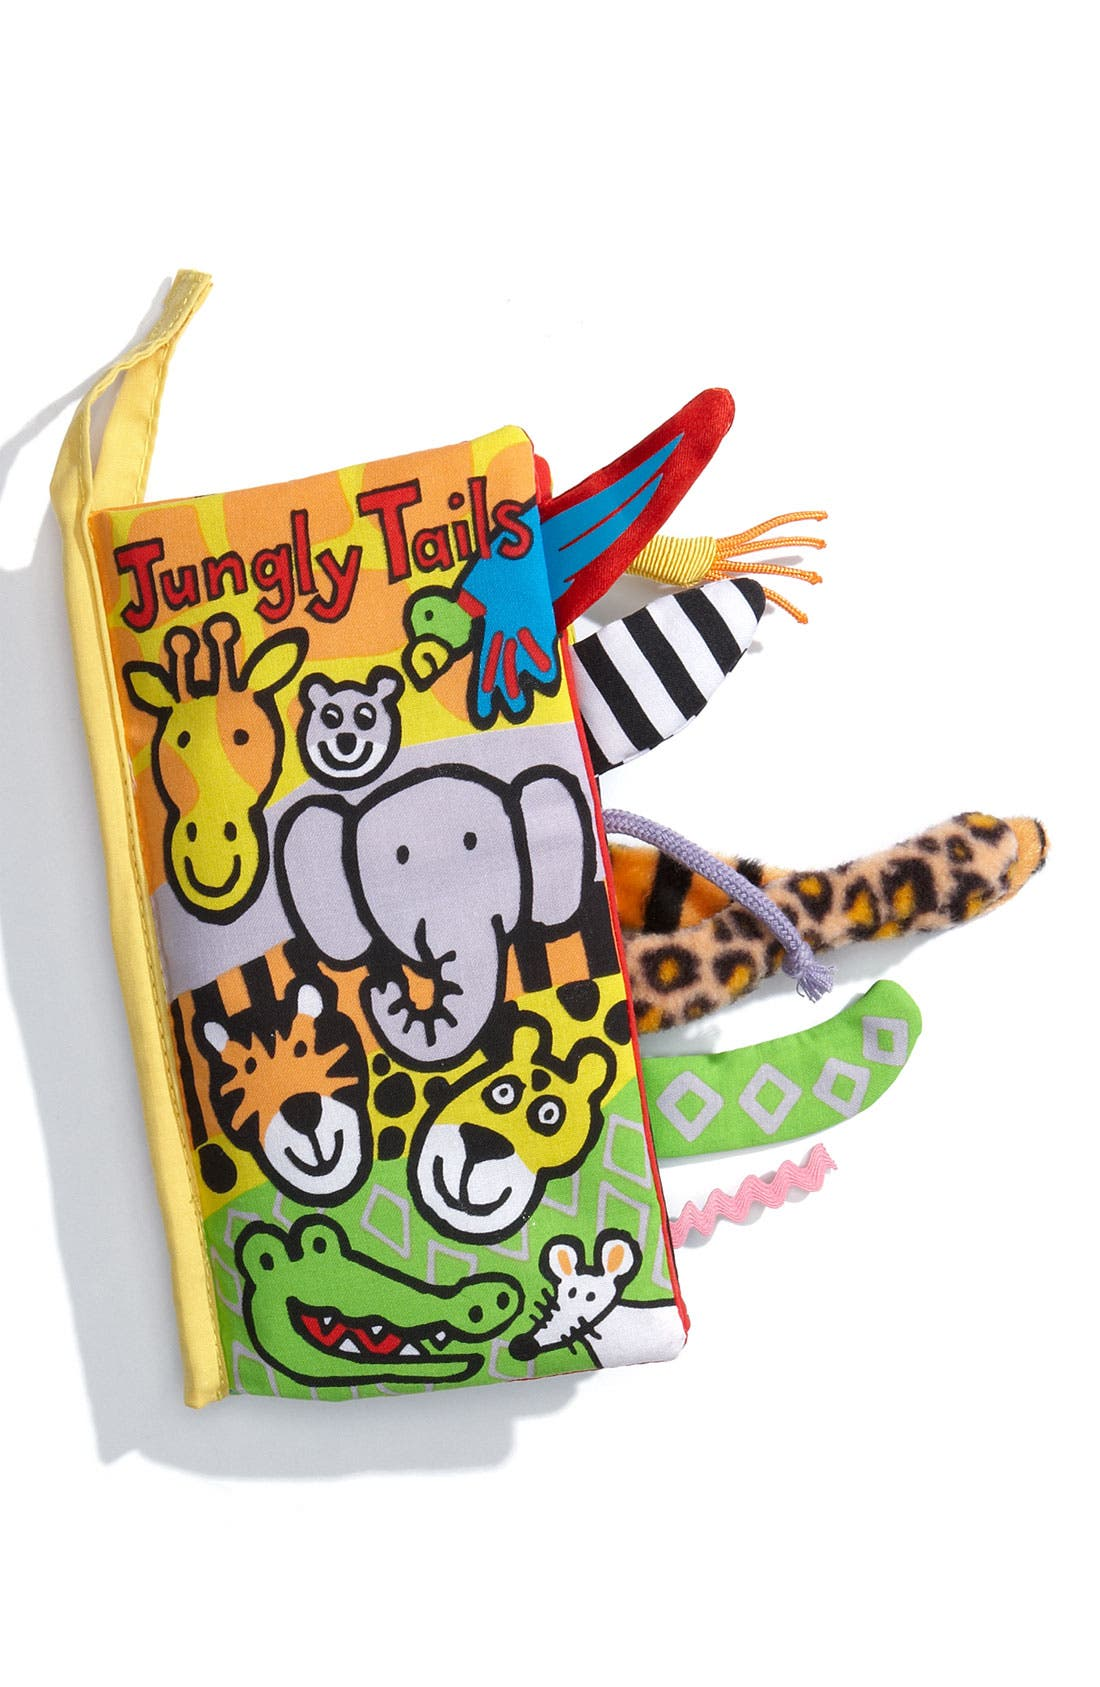 'Jungly Tails' Cloth Book,                             Main thumbnail 1, color,                             Multi